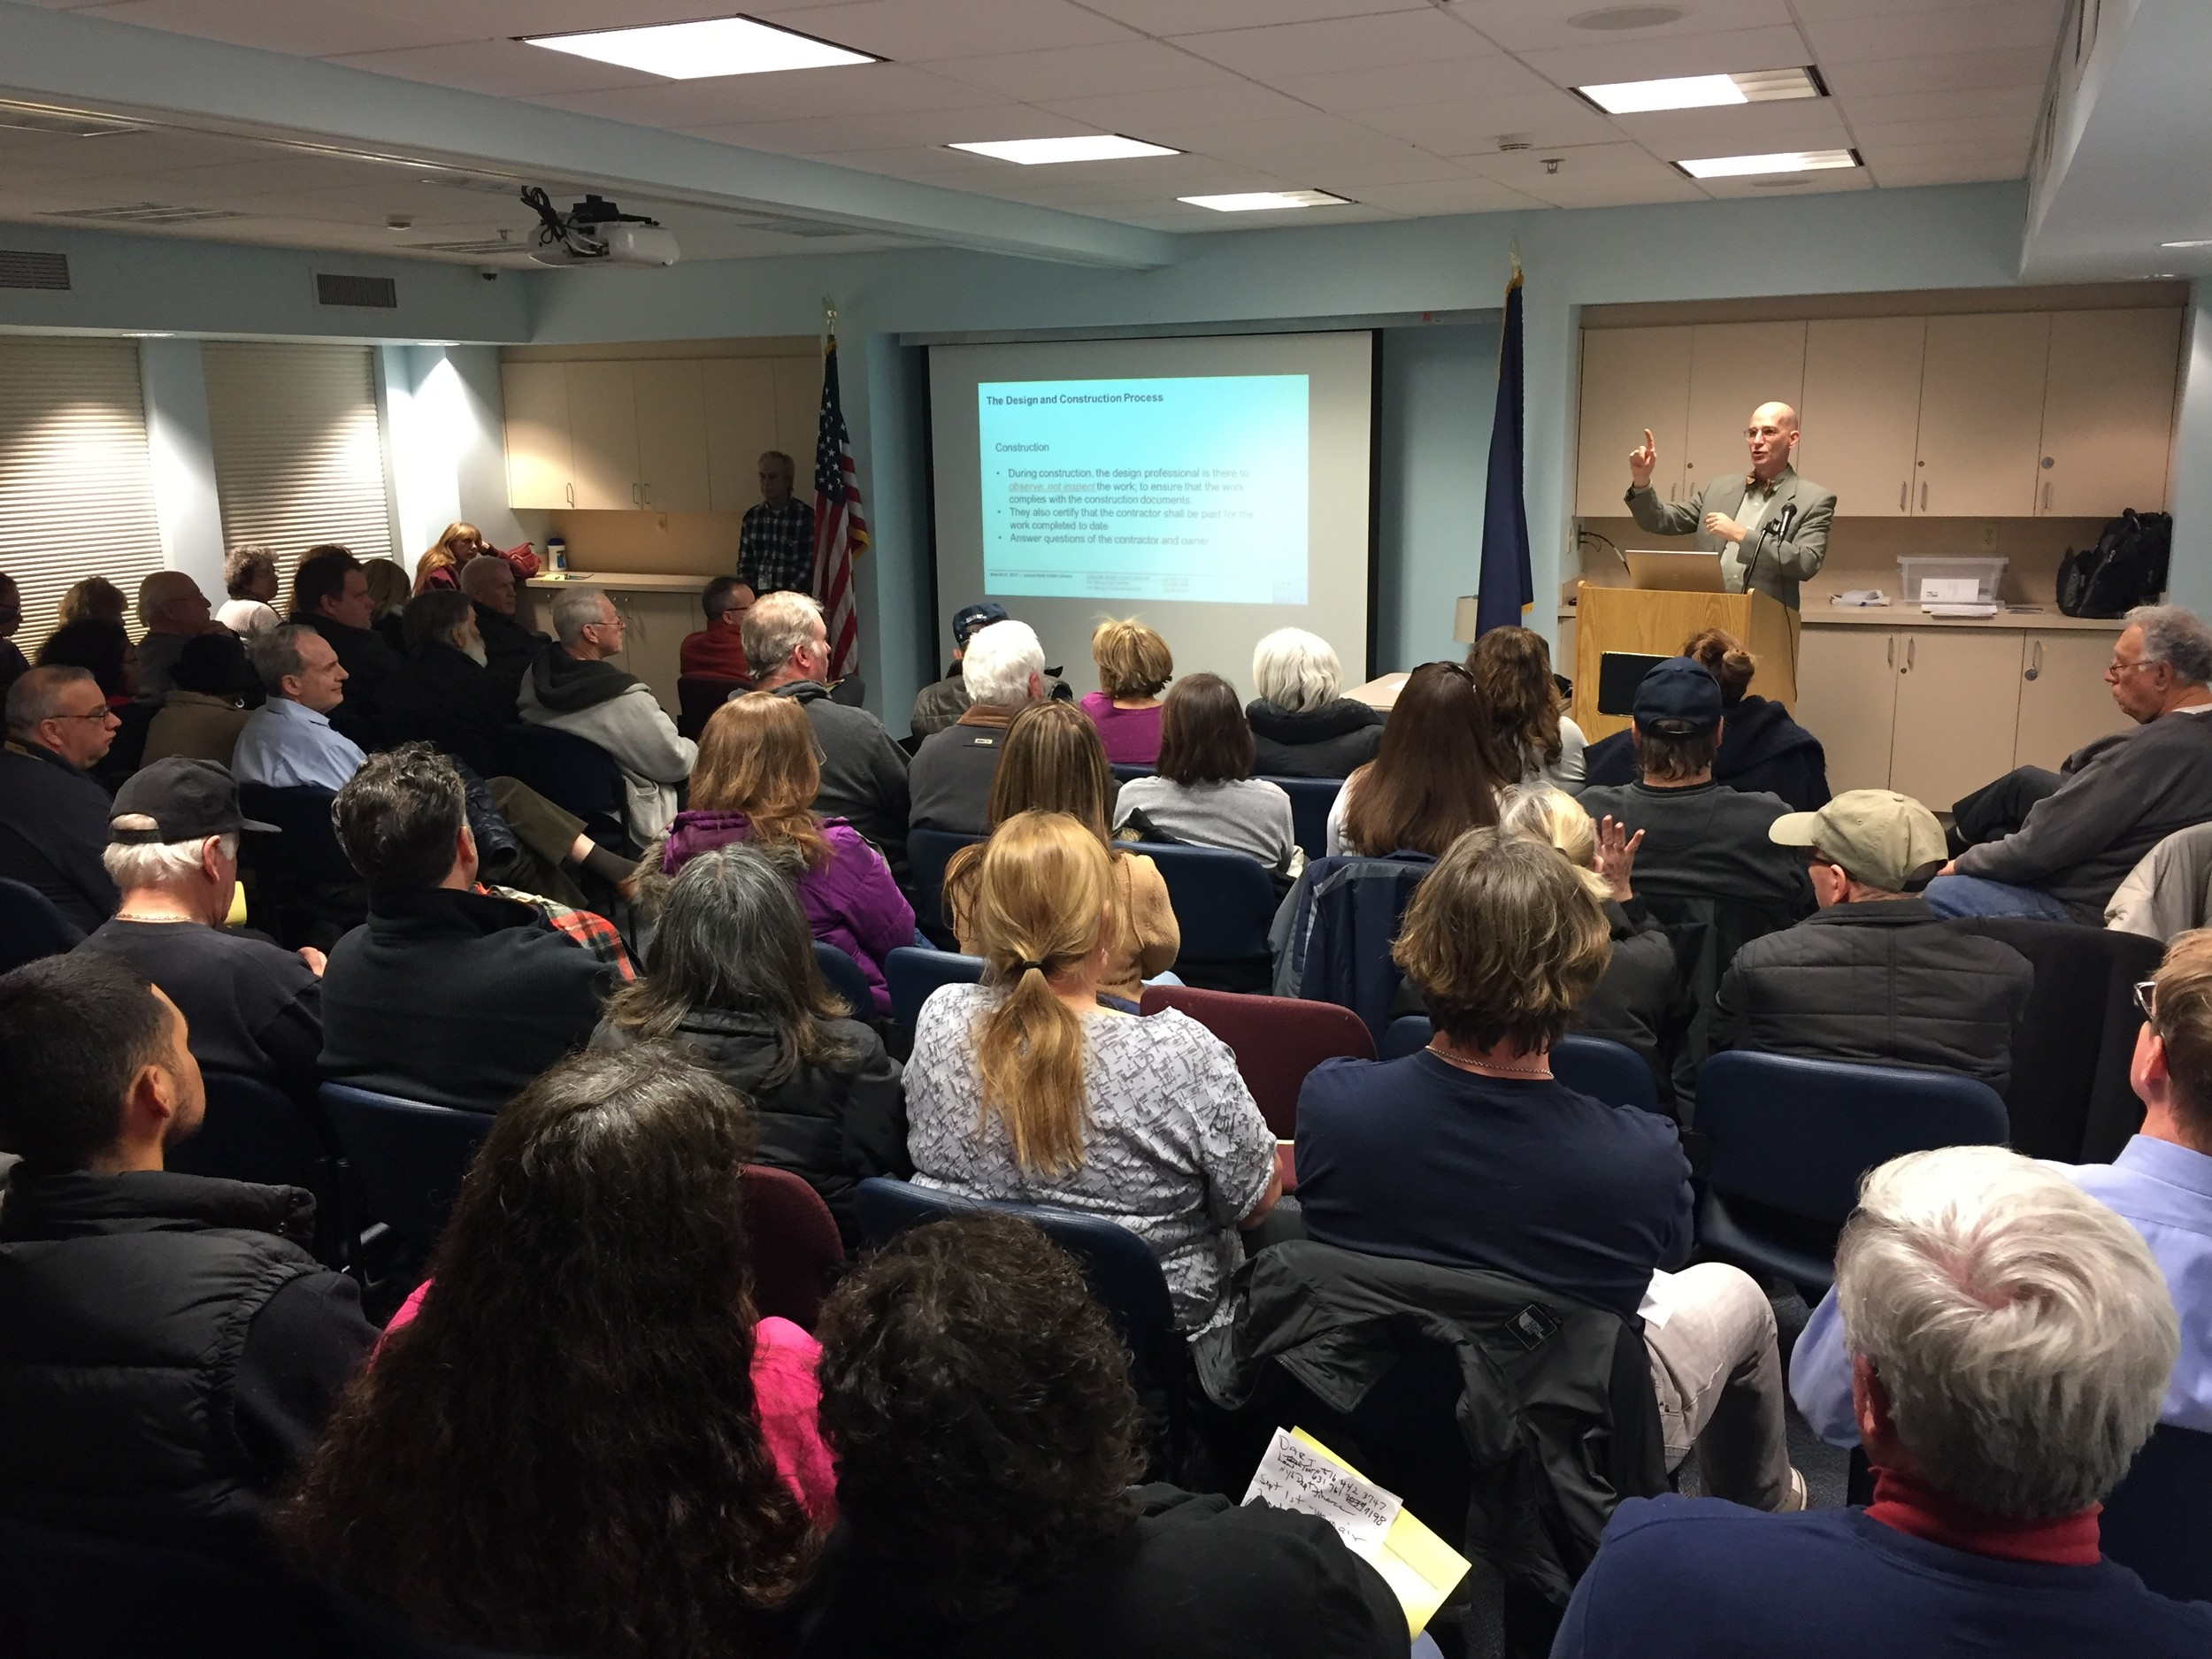 Architect Brian Baer led a Hurricane Sandy recovery education forum at the Island Park Library on March 22. More than 100 people came to the three-hour event.